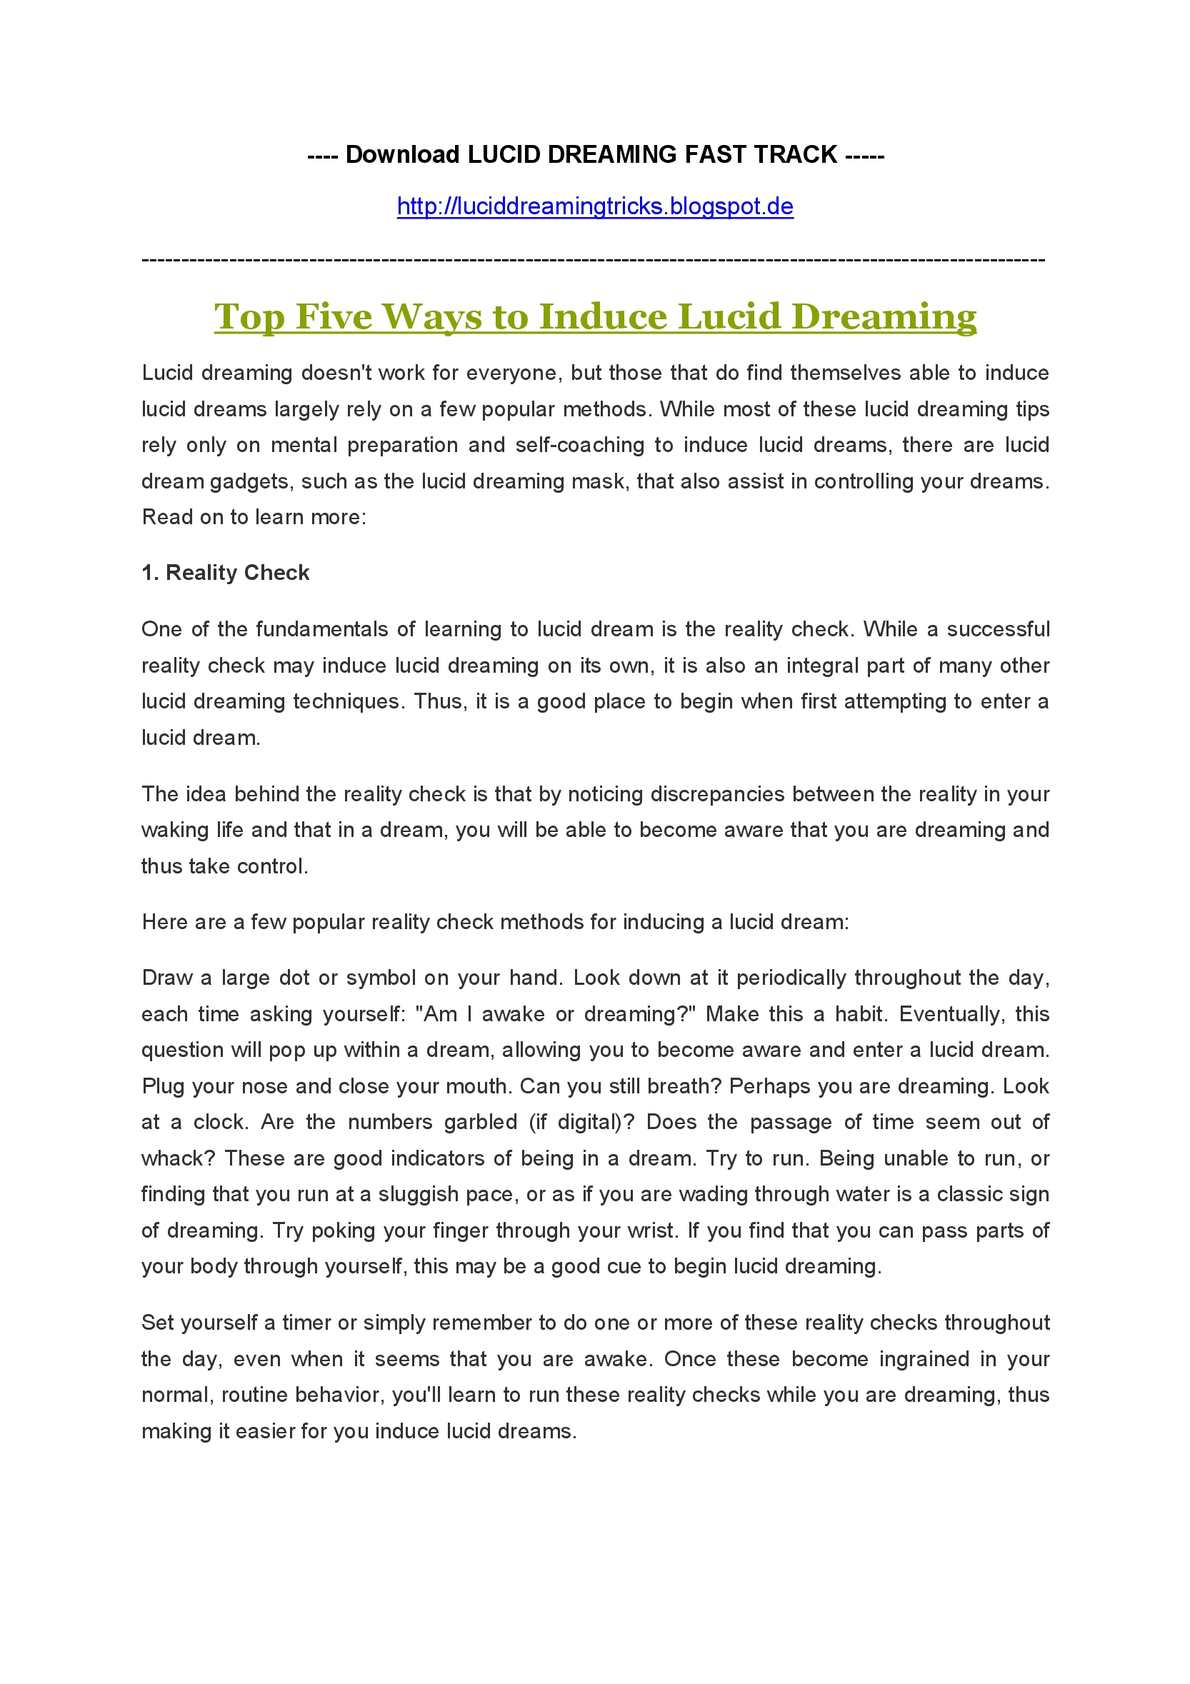 What can you do while lucid dreaming